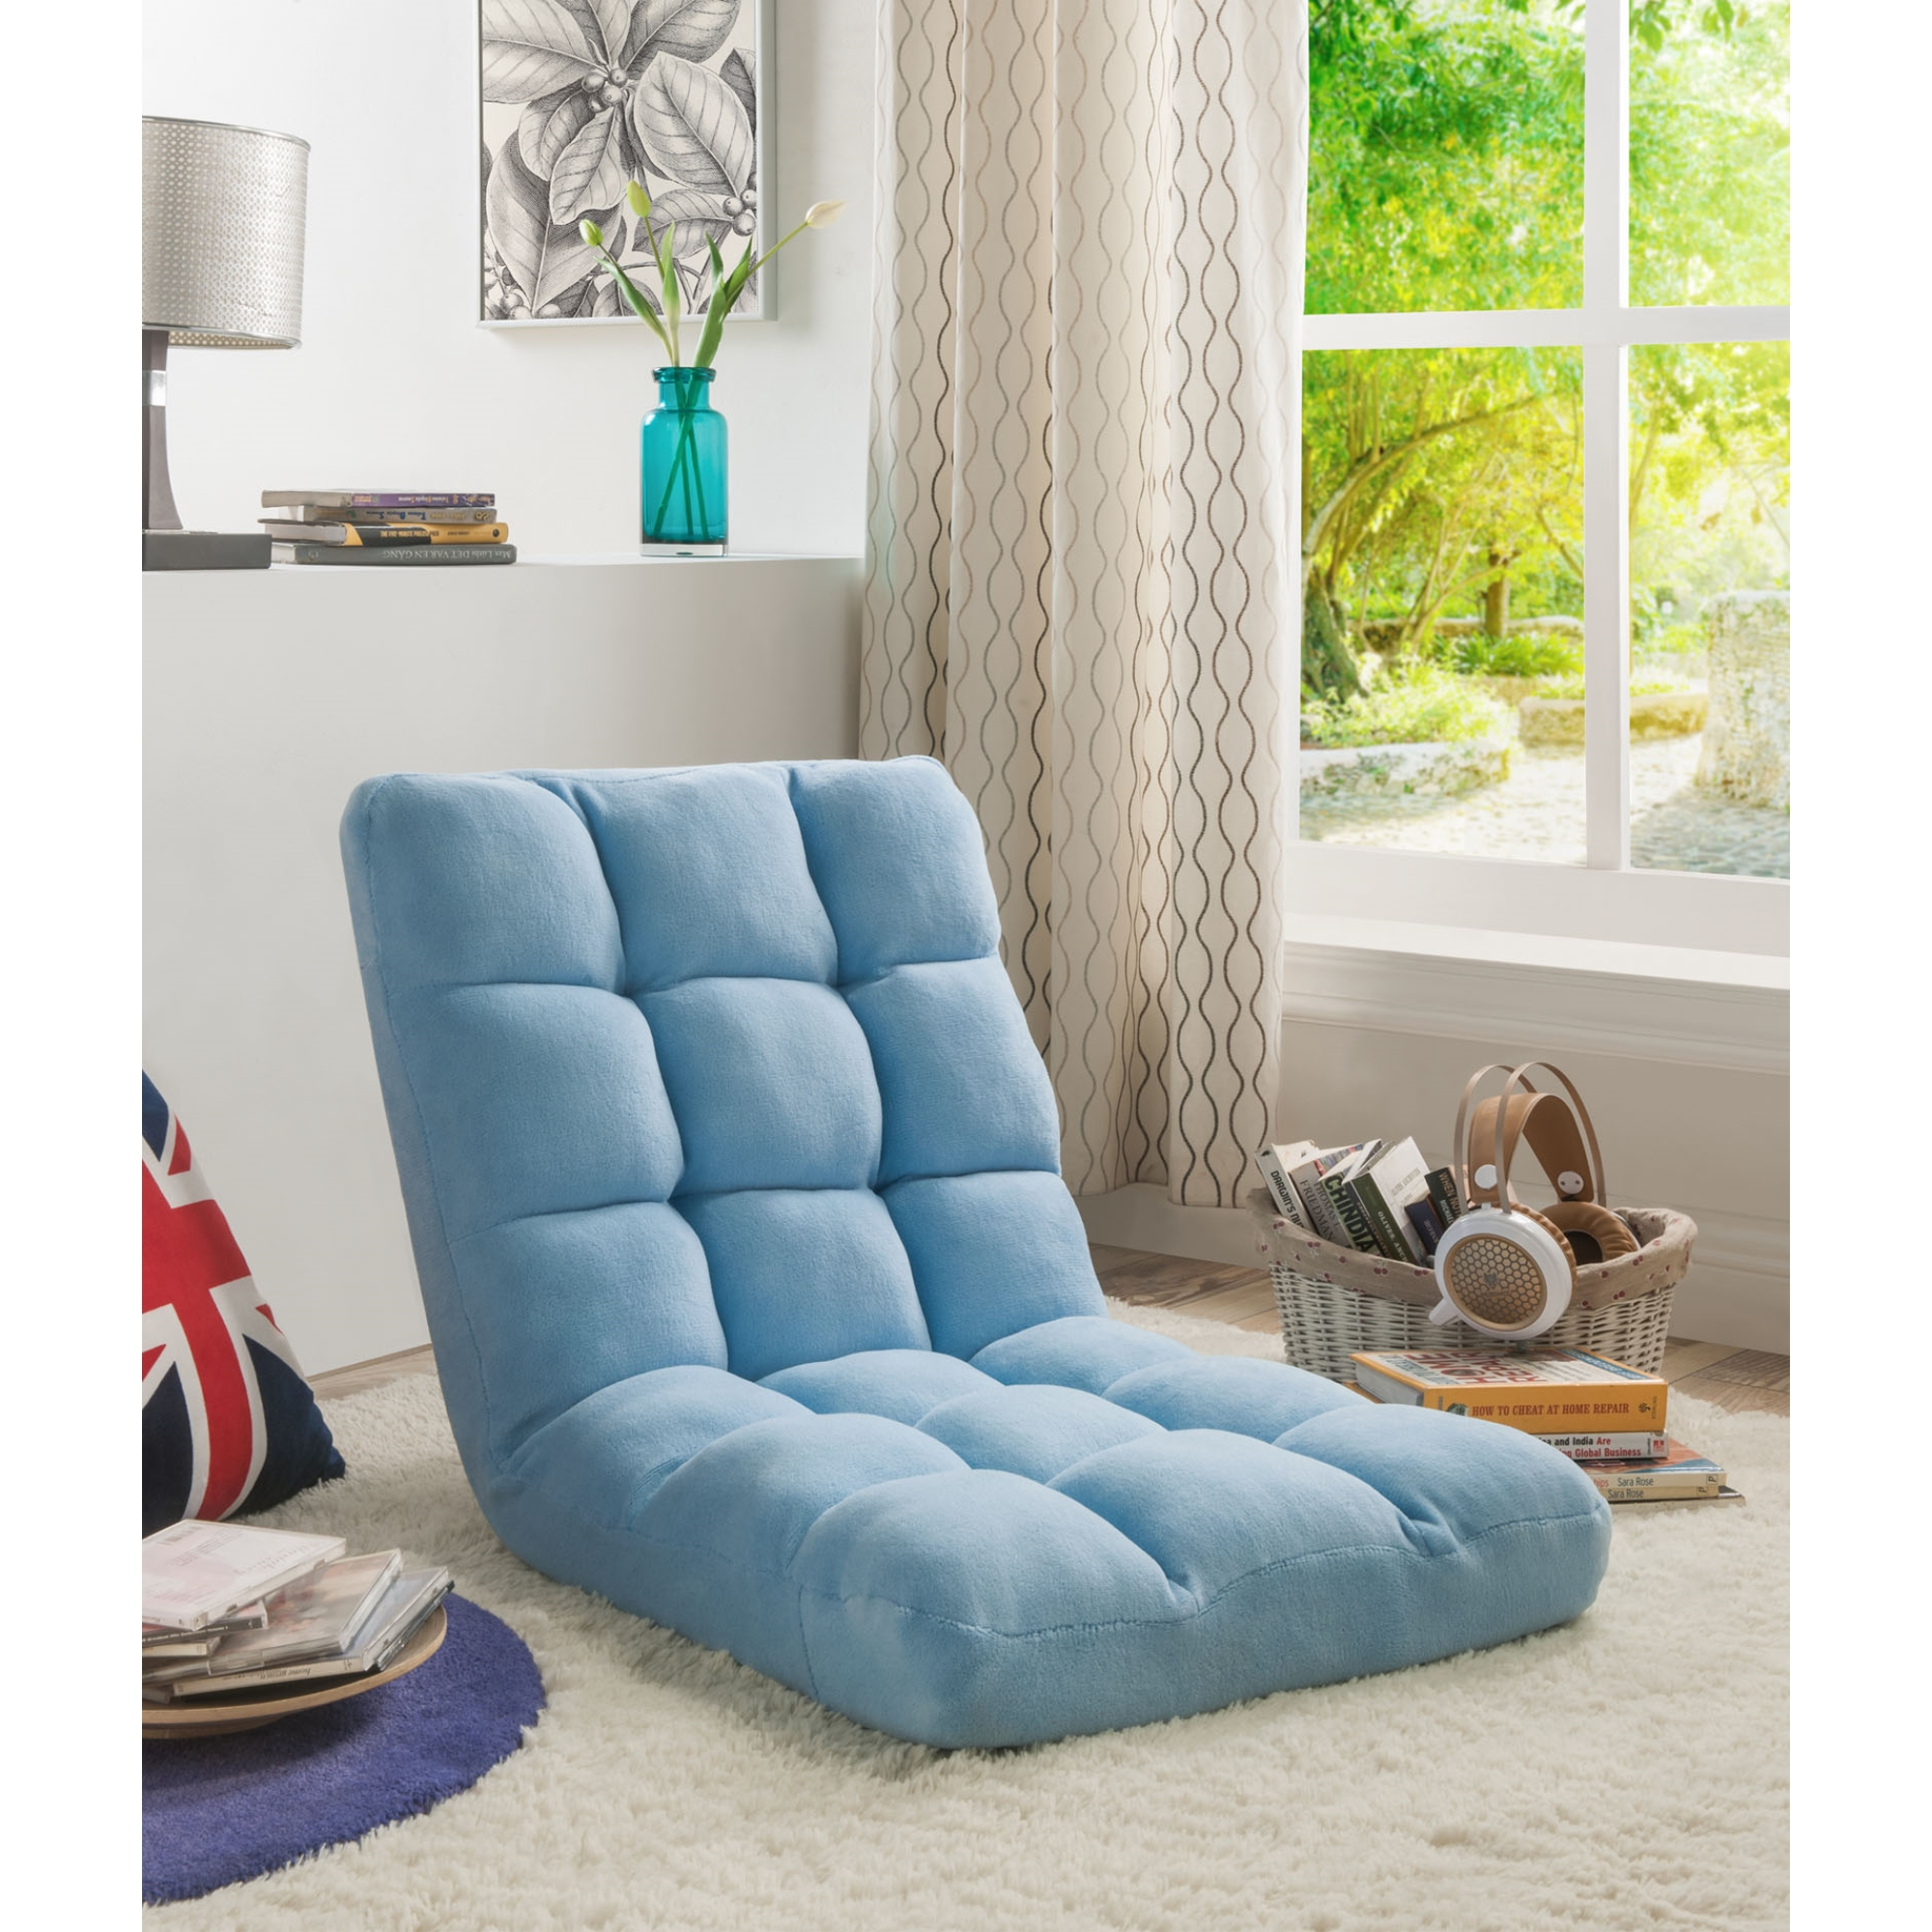 Loungie Blue Microplush Chair Foam Filling Steel Tube Frame